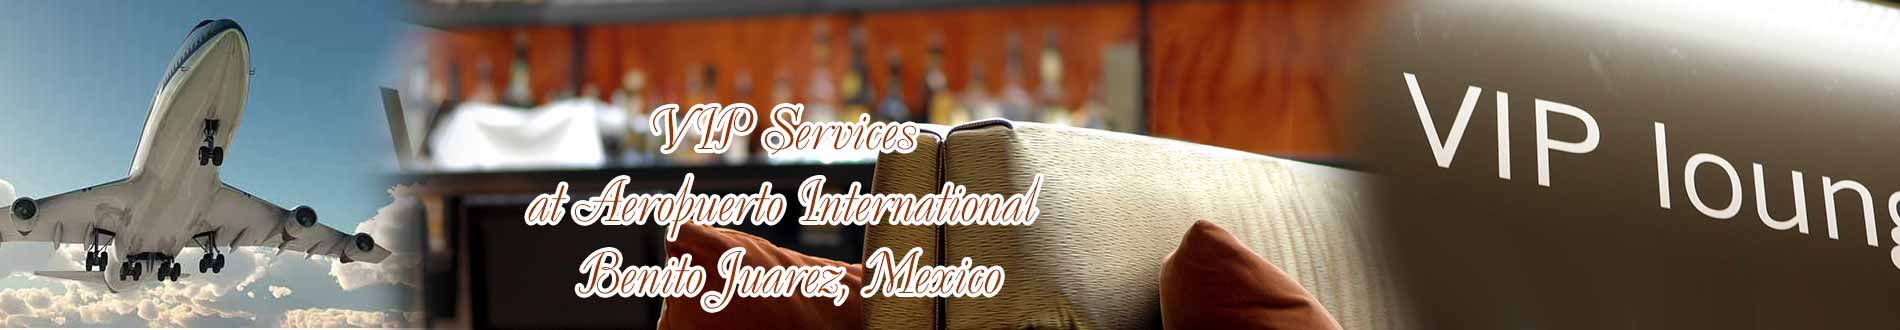 Mexico City Meet and Assist escort to the boarding gate